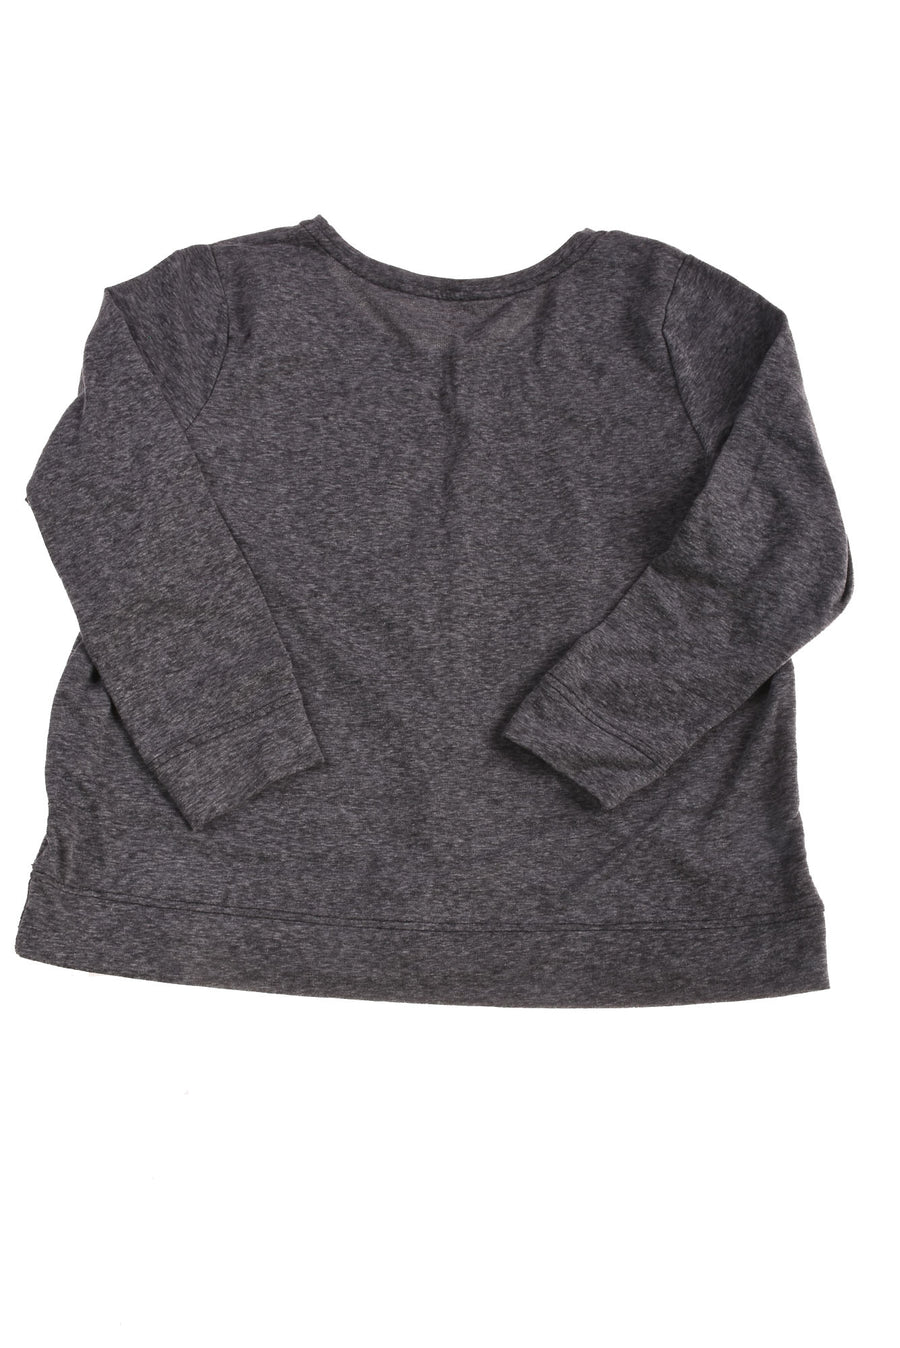 USED Style & Co. Women's Top X-Large Gray